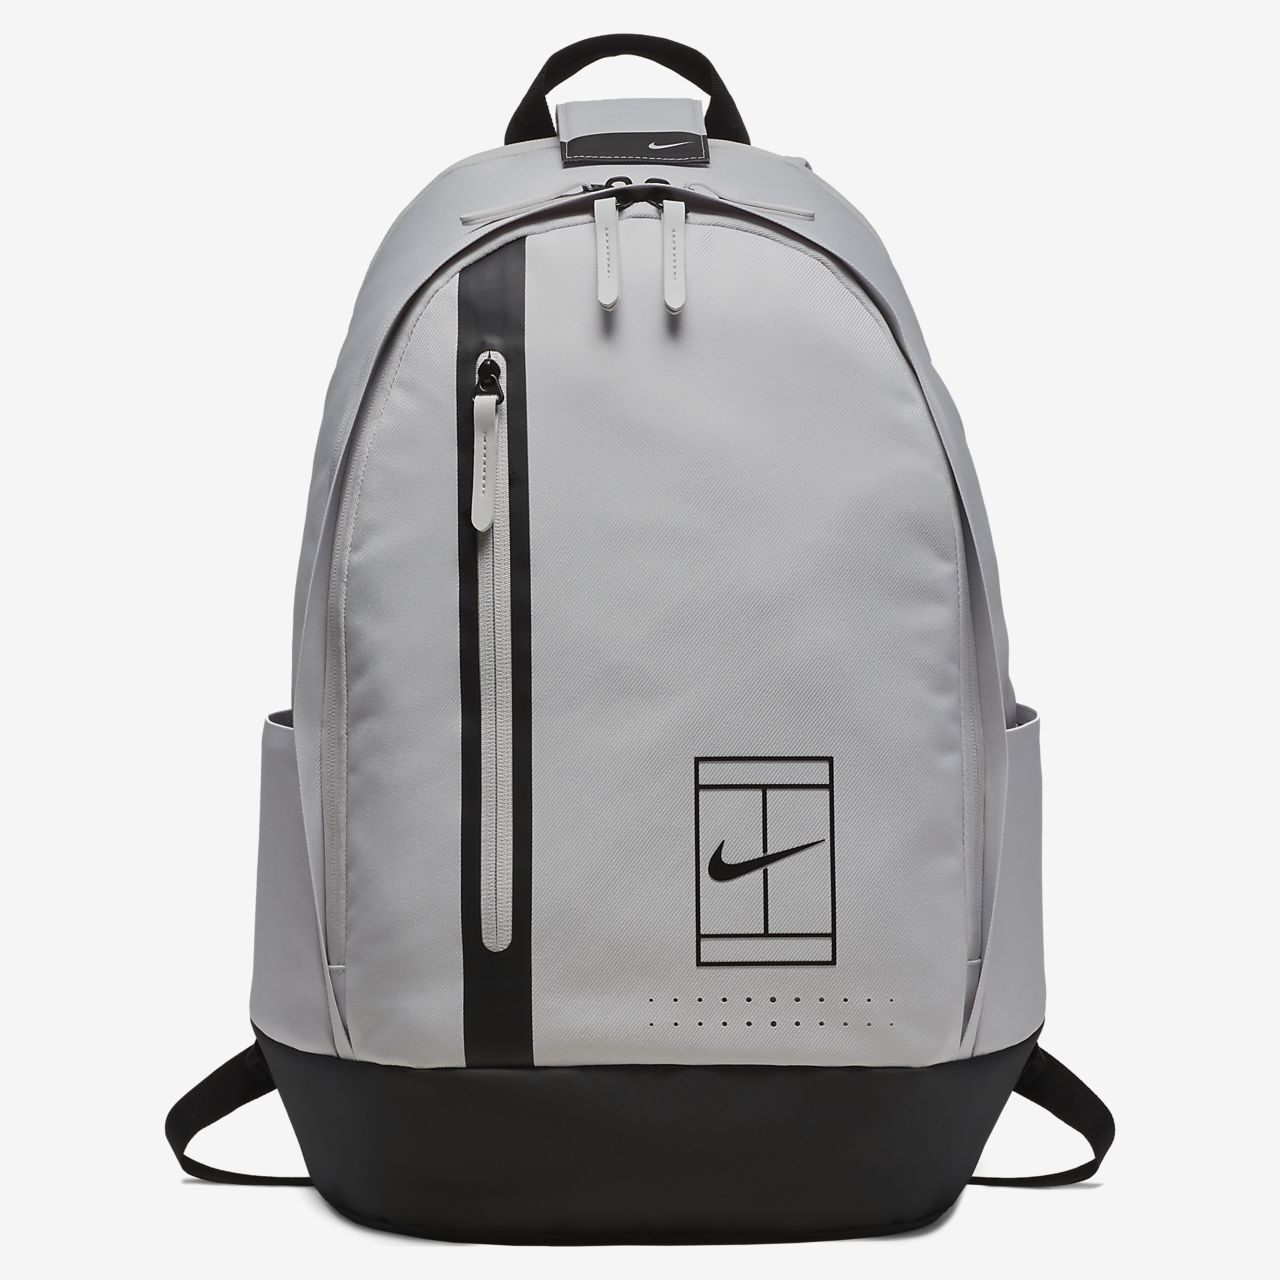 NikeCourt Advantage Tennis Backpack (With images) | Tennis